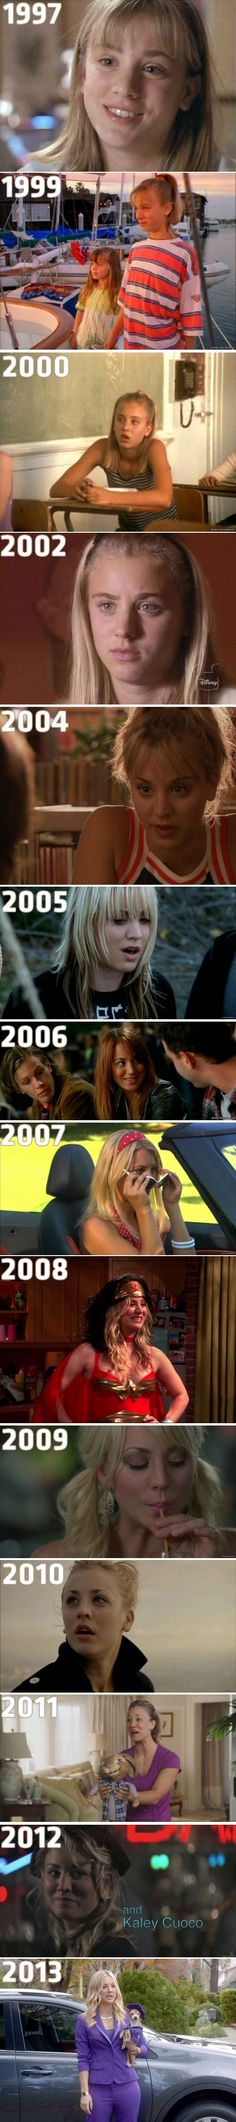 The Evolution of Kaley Cuoco